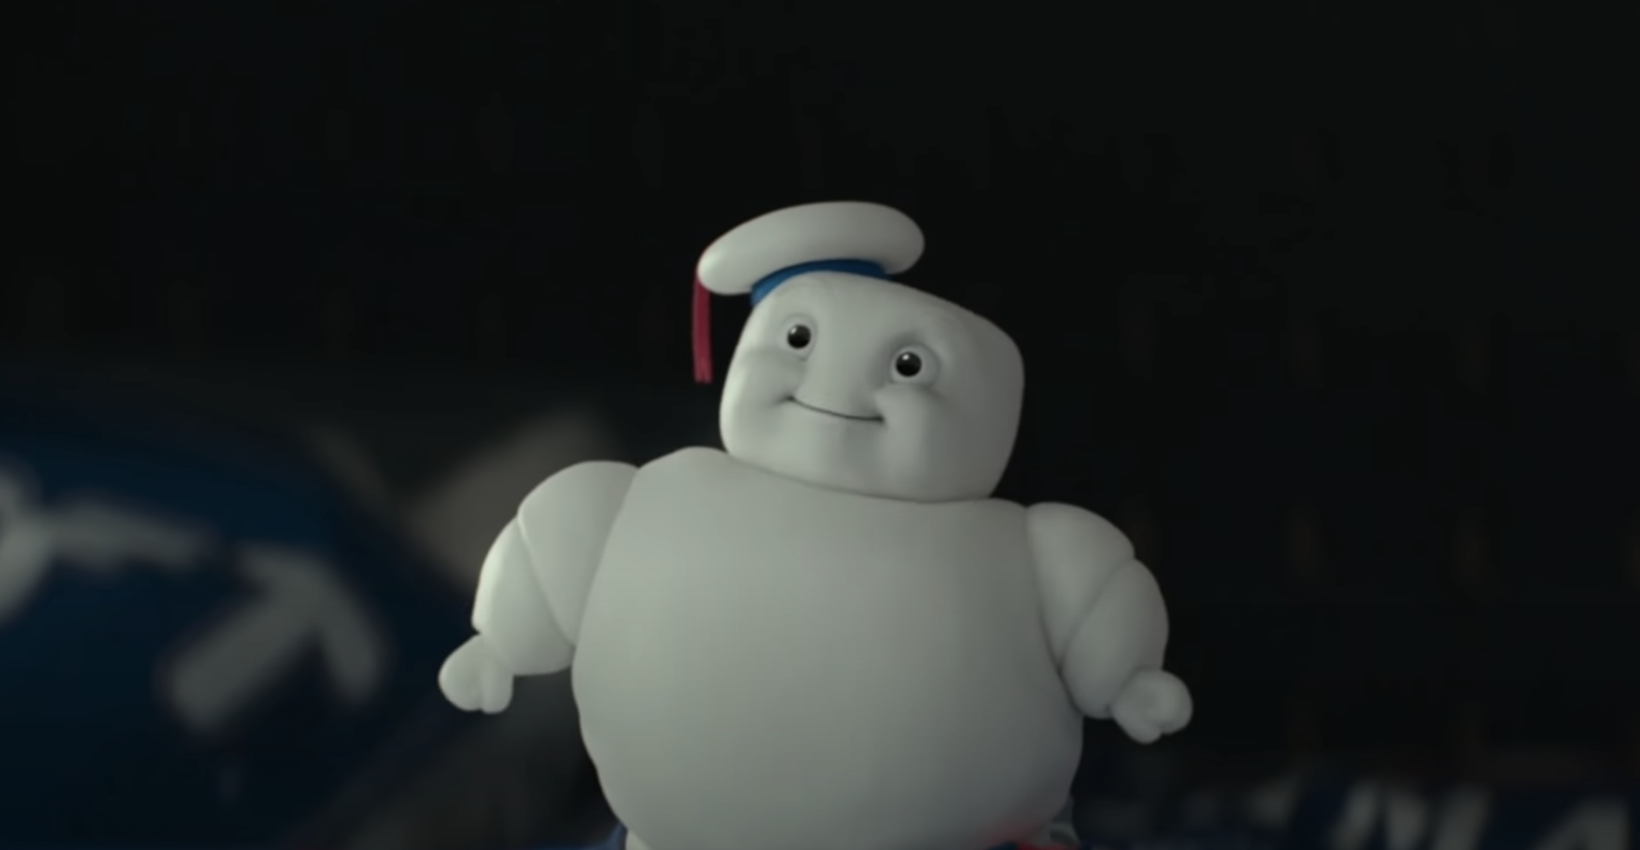 Ghostbusters: Afterlife trailer unleashes Mini-Puft chaos on Paul Rudd - CNET